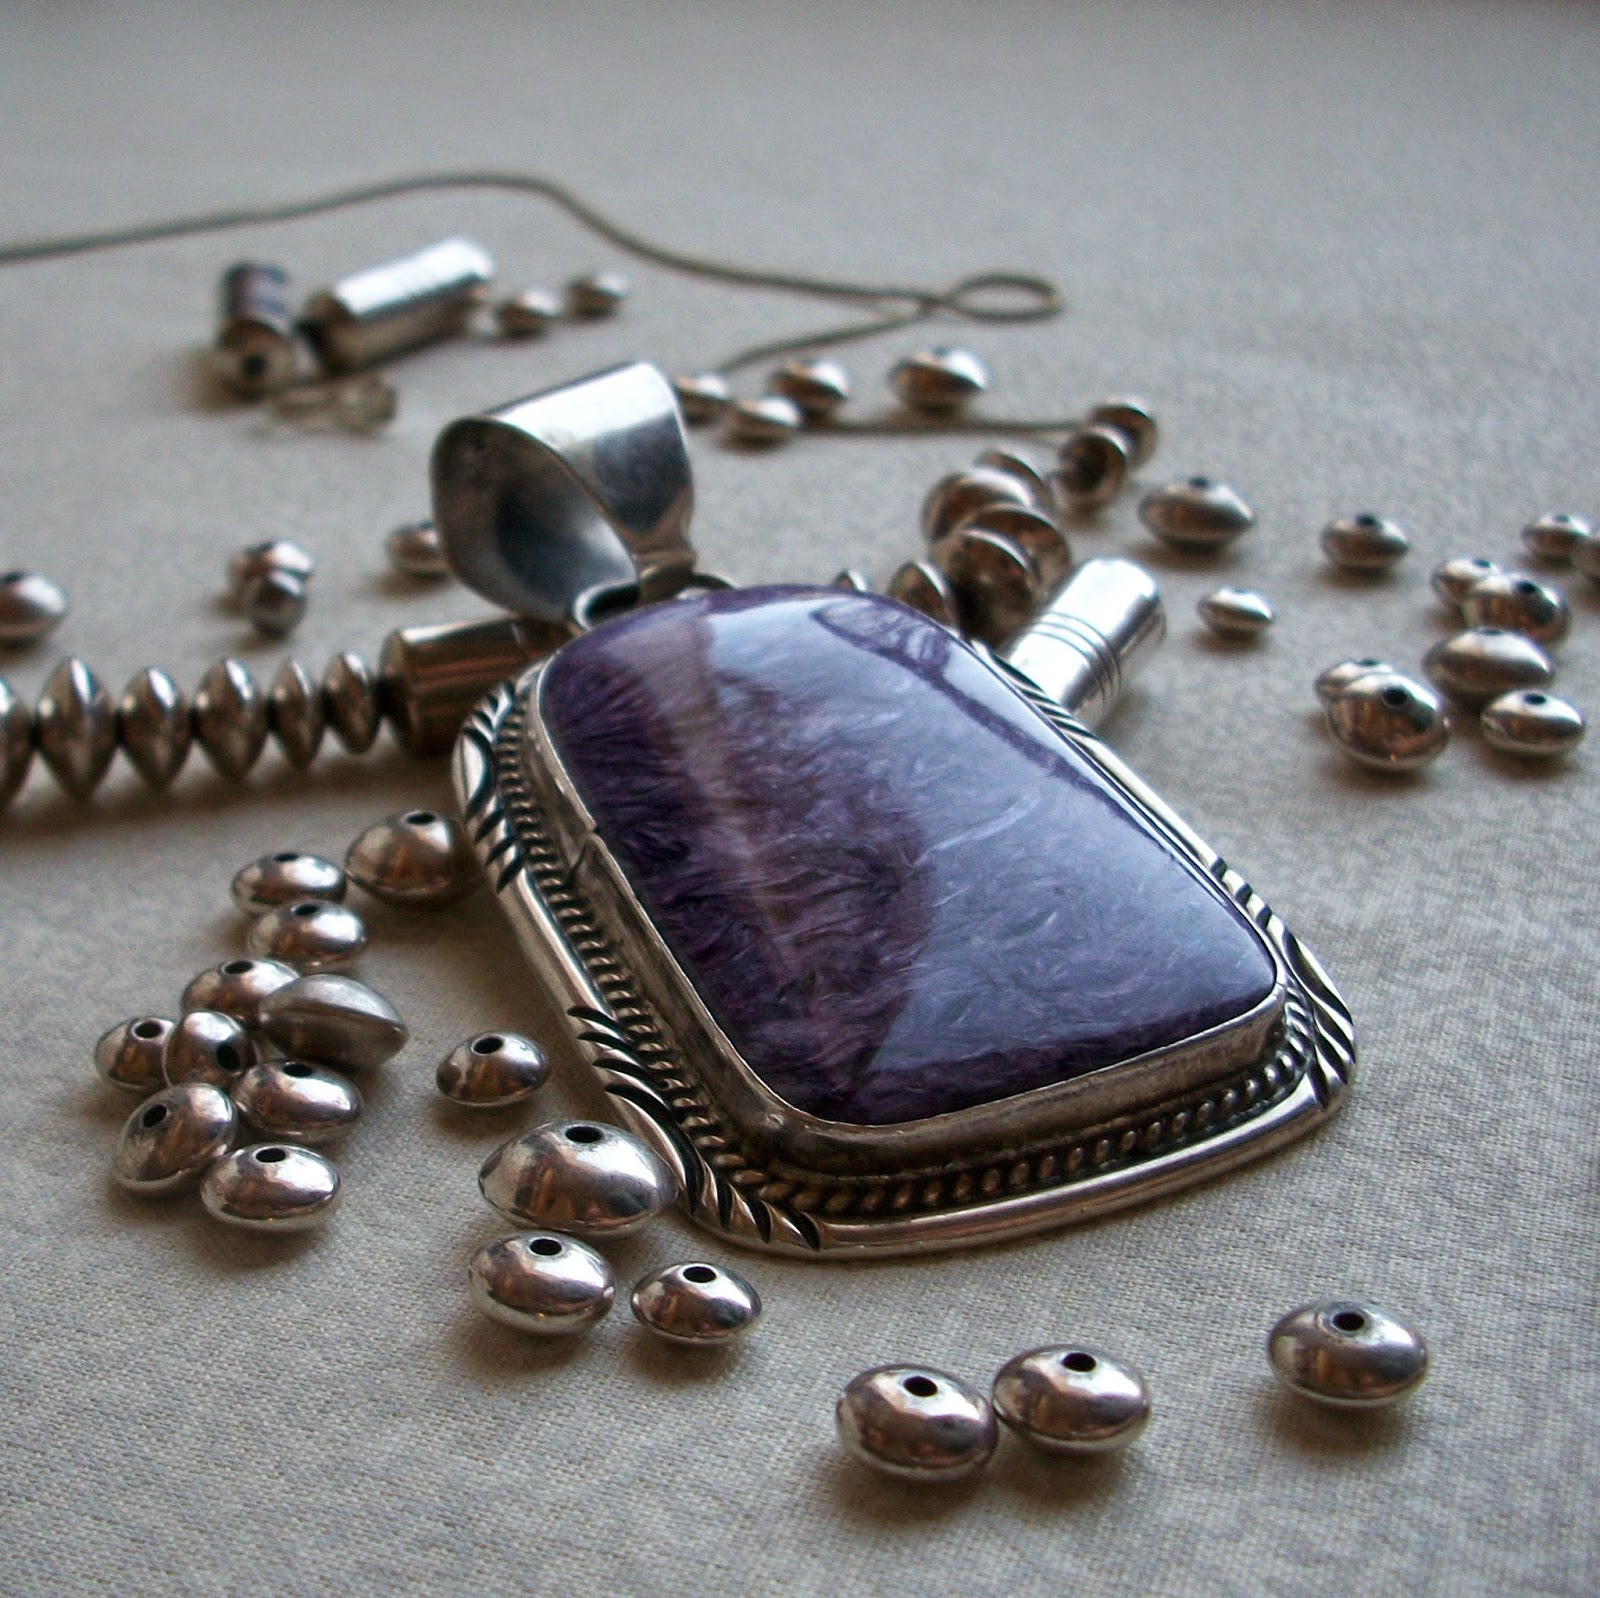 Broken Necklace of Silver & Purple Stone